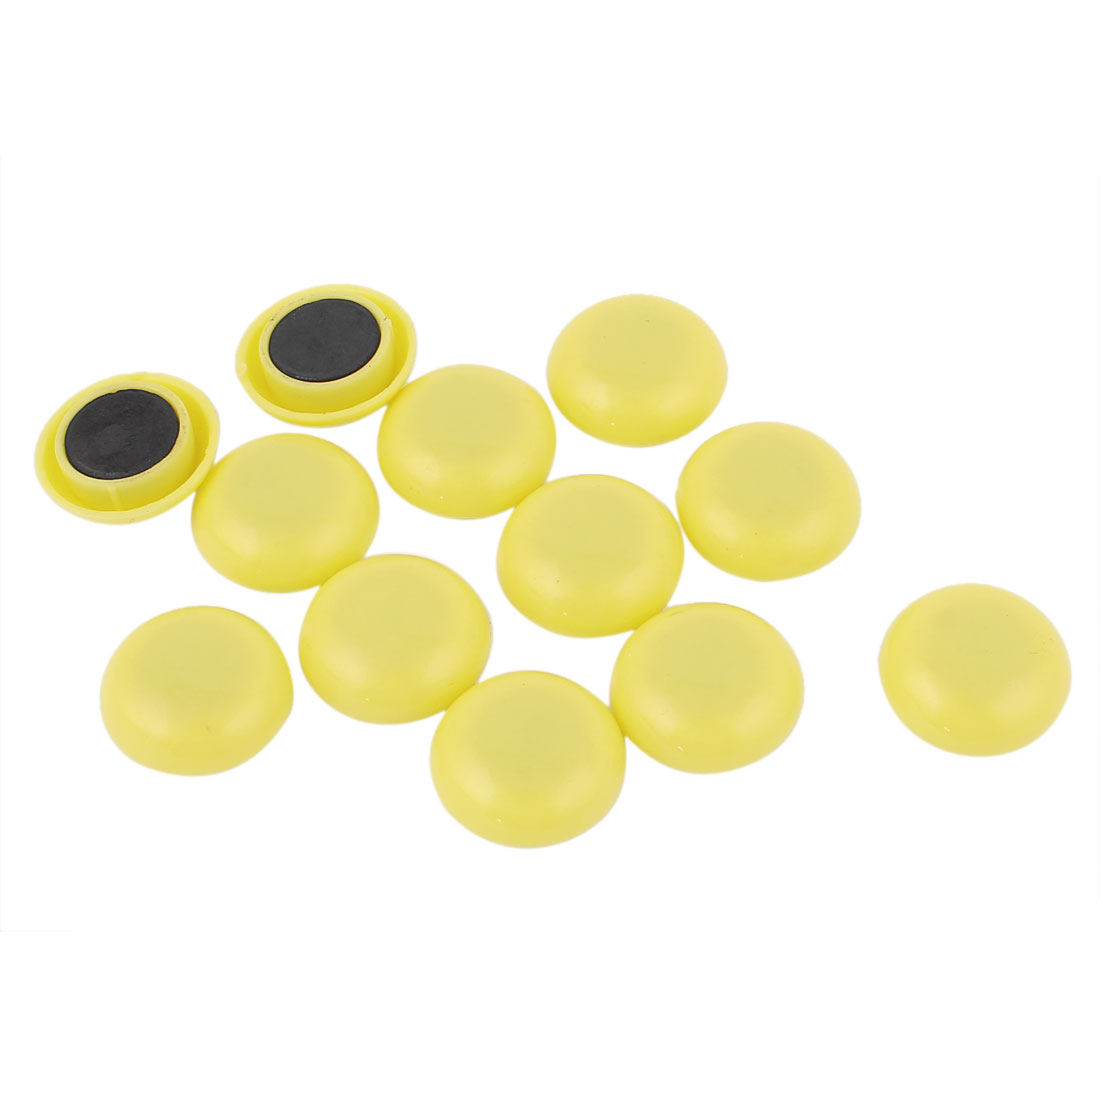 Home Office Round Yellow Blackboard Fridge Magnetic Stickers 12Pcs